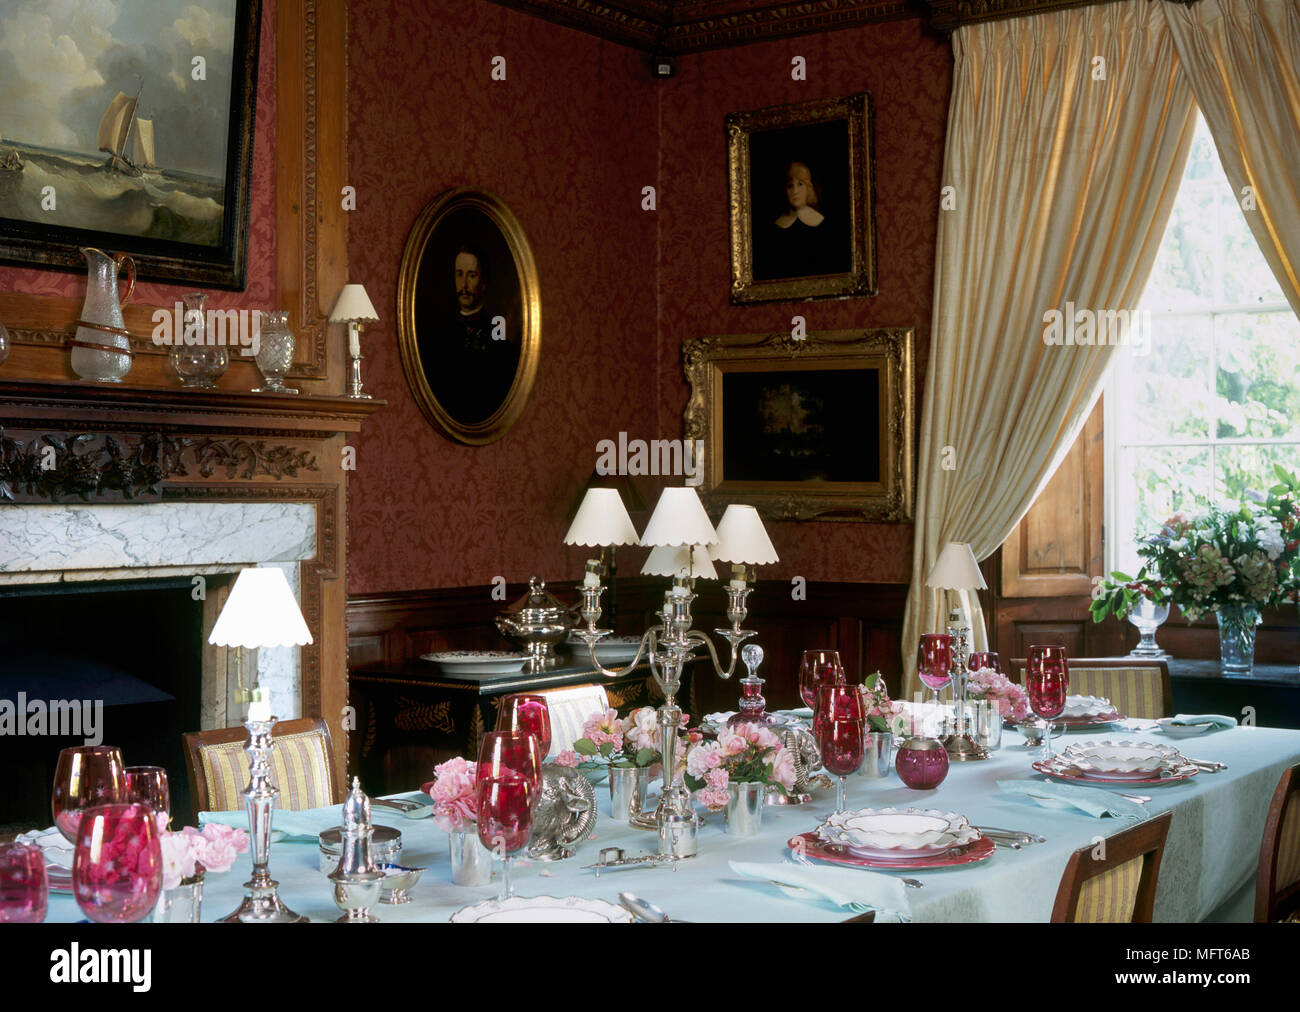 A Traditional Red Dining Room With Marble Fireplace Table Laid Formal Setting